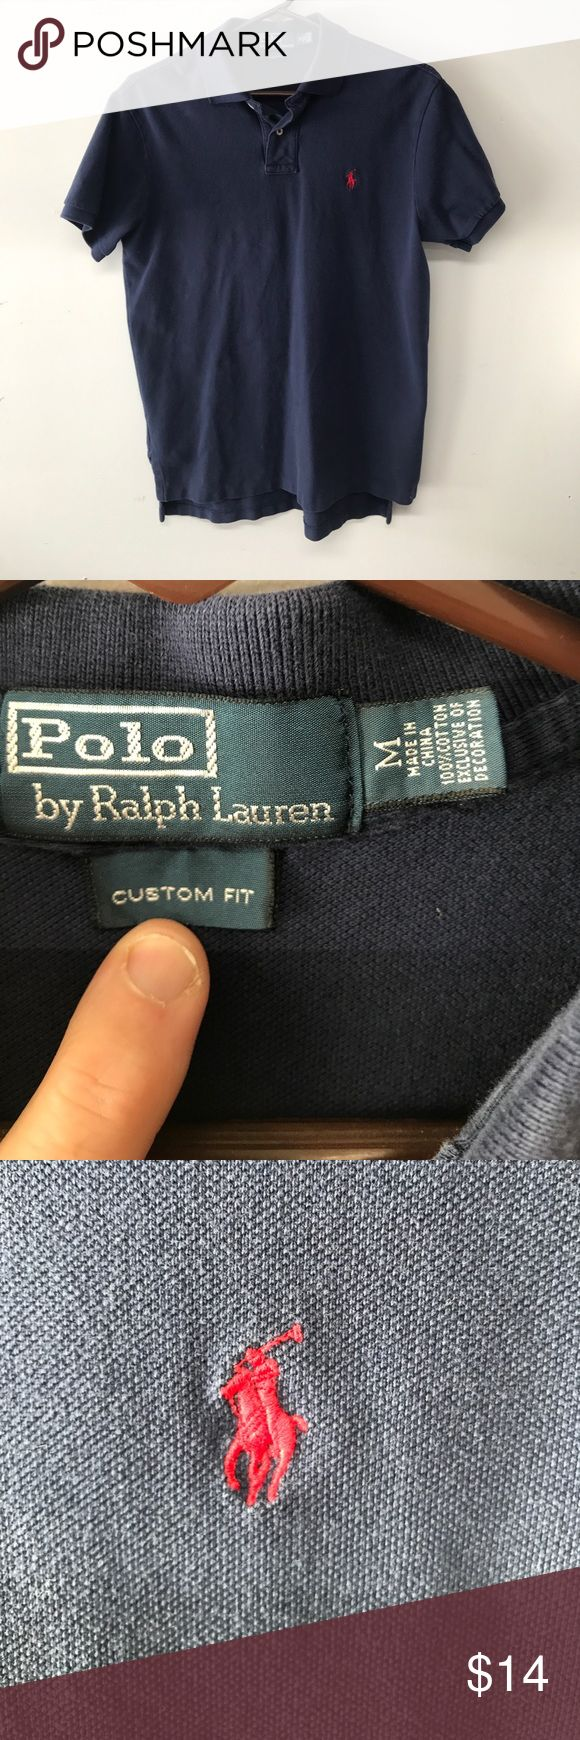 Preowned Polo by Ralph Lauren polo shirt Preowned Polo by Ralph Lauren polo shirt. Size Medium in very good condition. Made in China of 100% cotton. Smoke free home. Submit all offers. C7 Polo by Ralph Lauren Shirts Polos